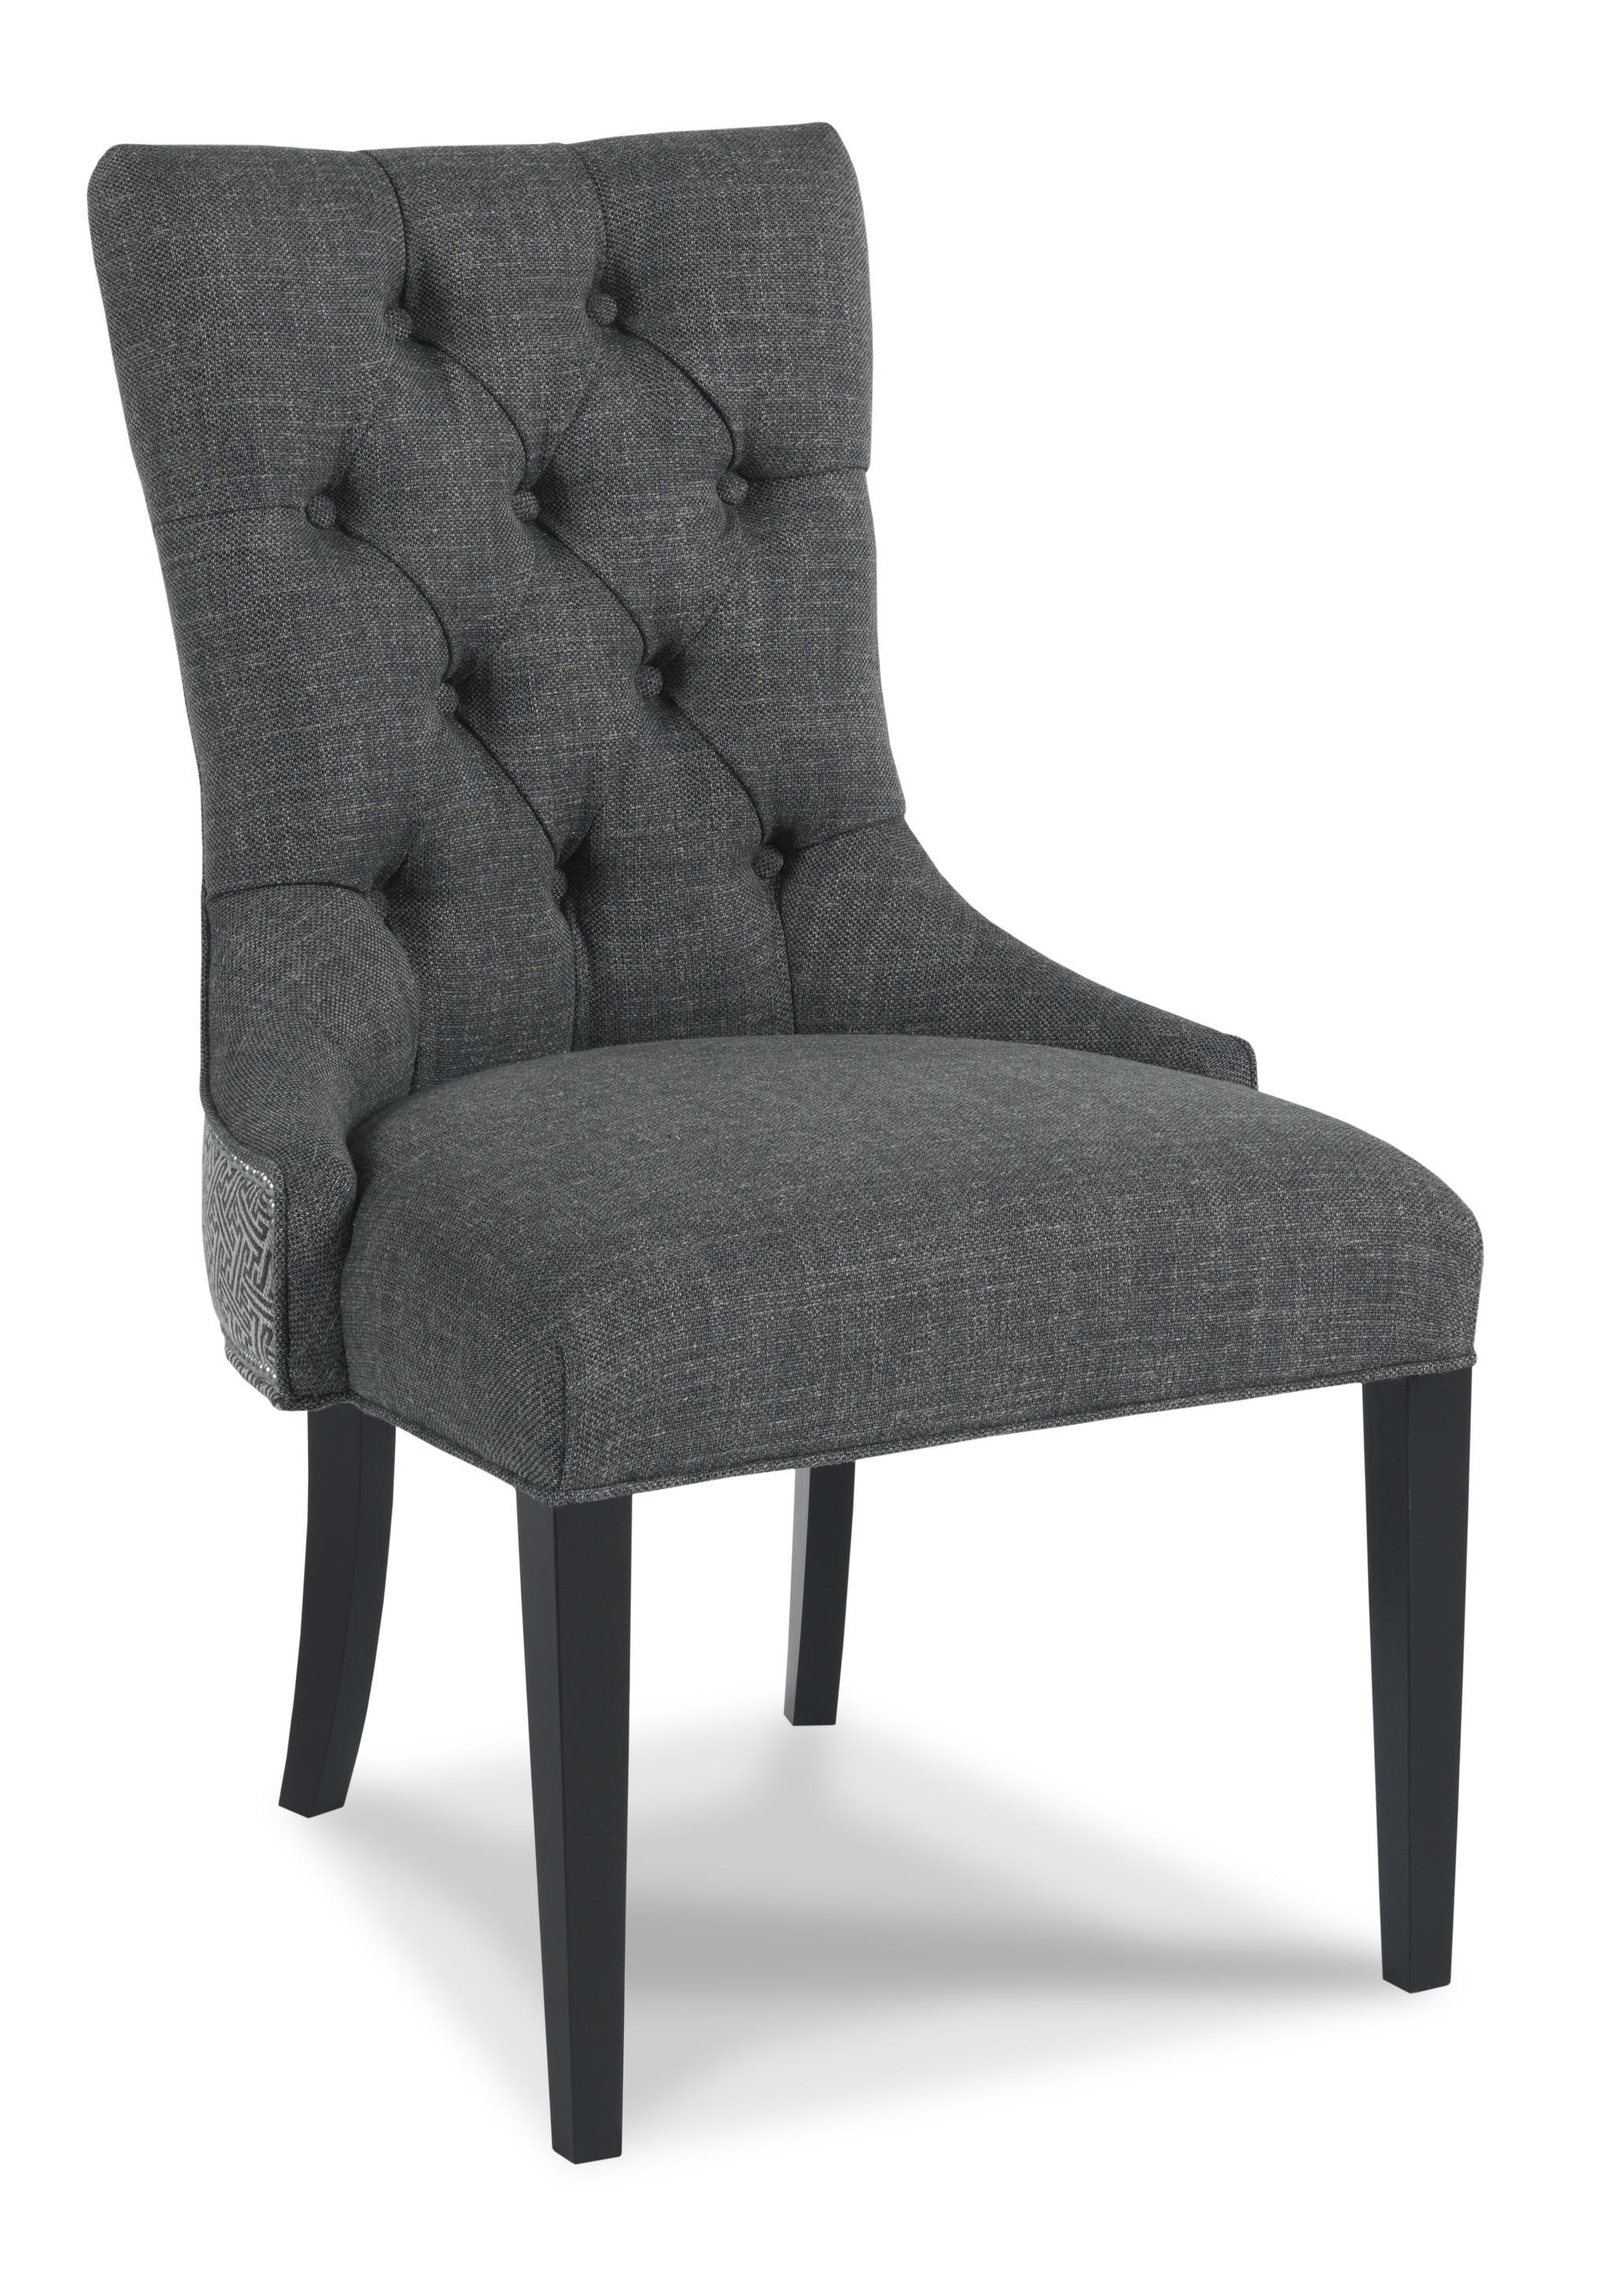 Sam Moore Walden Traditional Upholstered Button Tufted